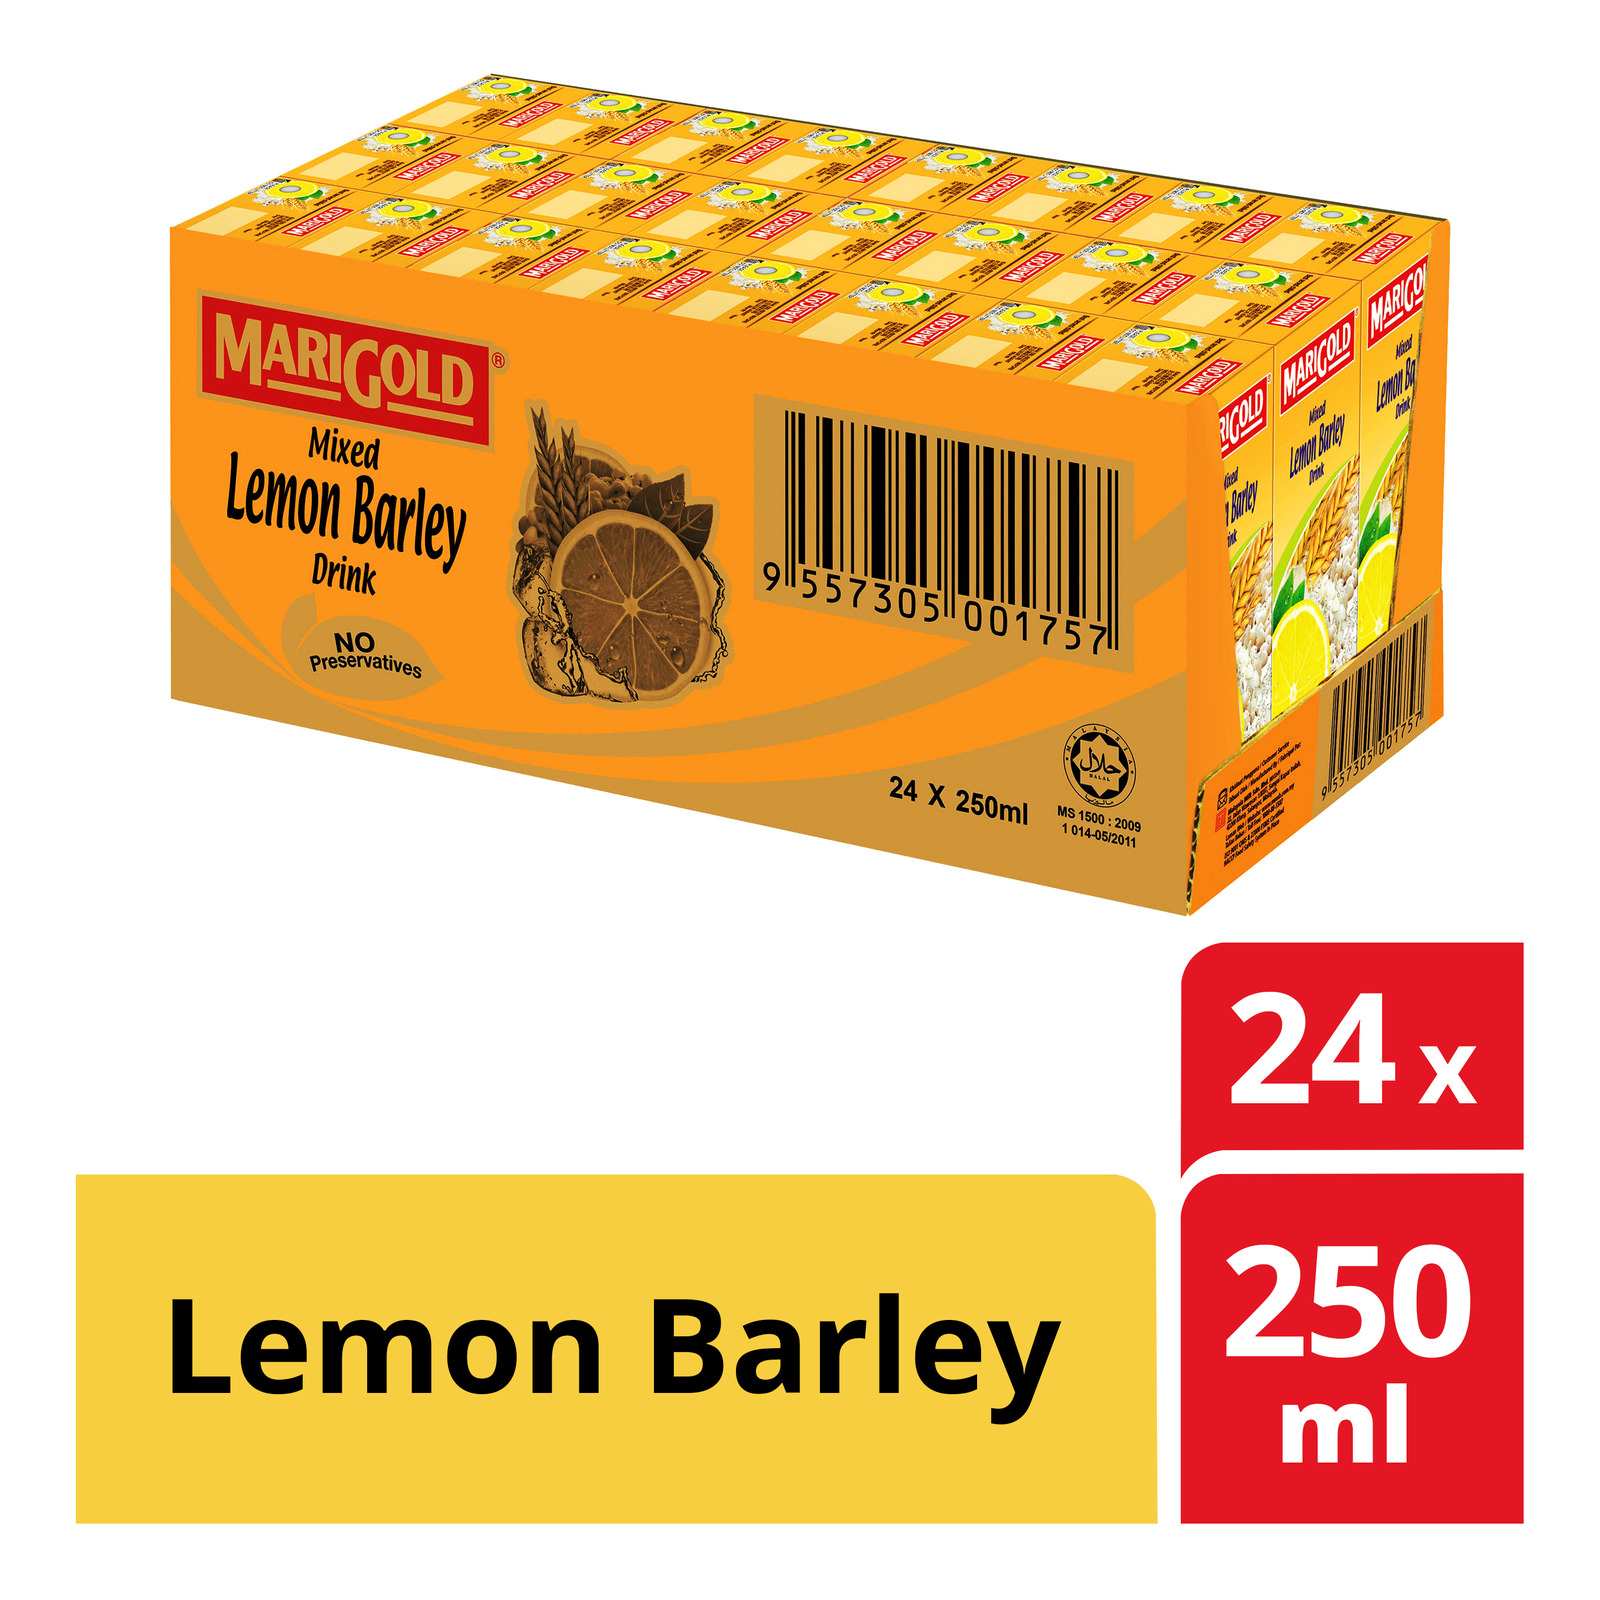 MARIGOLD Mixed Lemon Barley Drink 24sX250ml